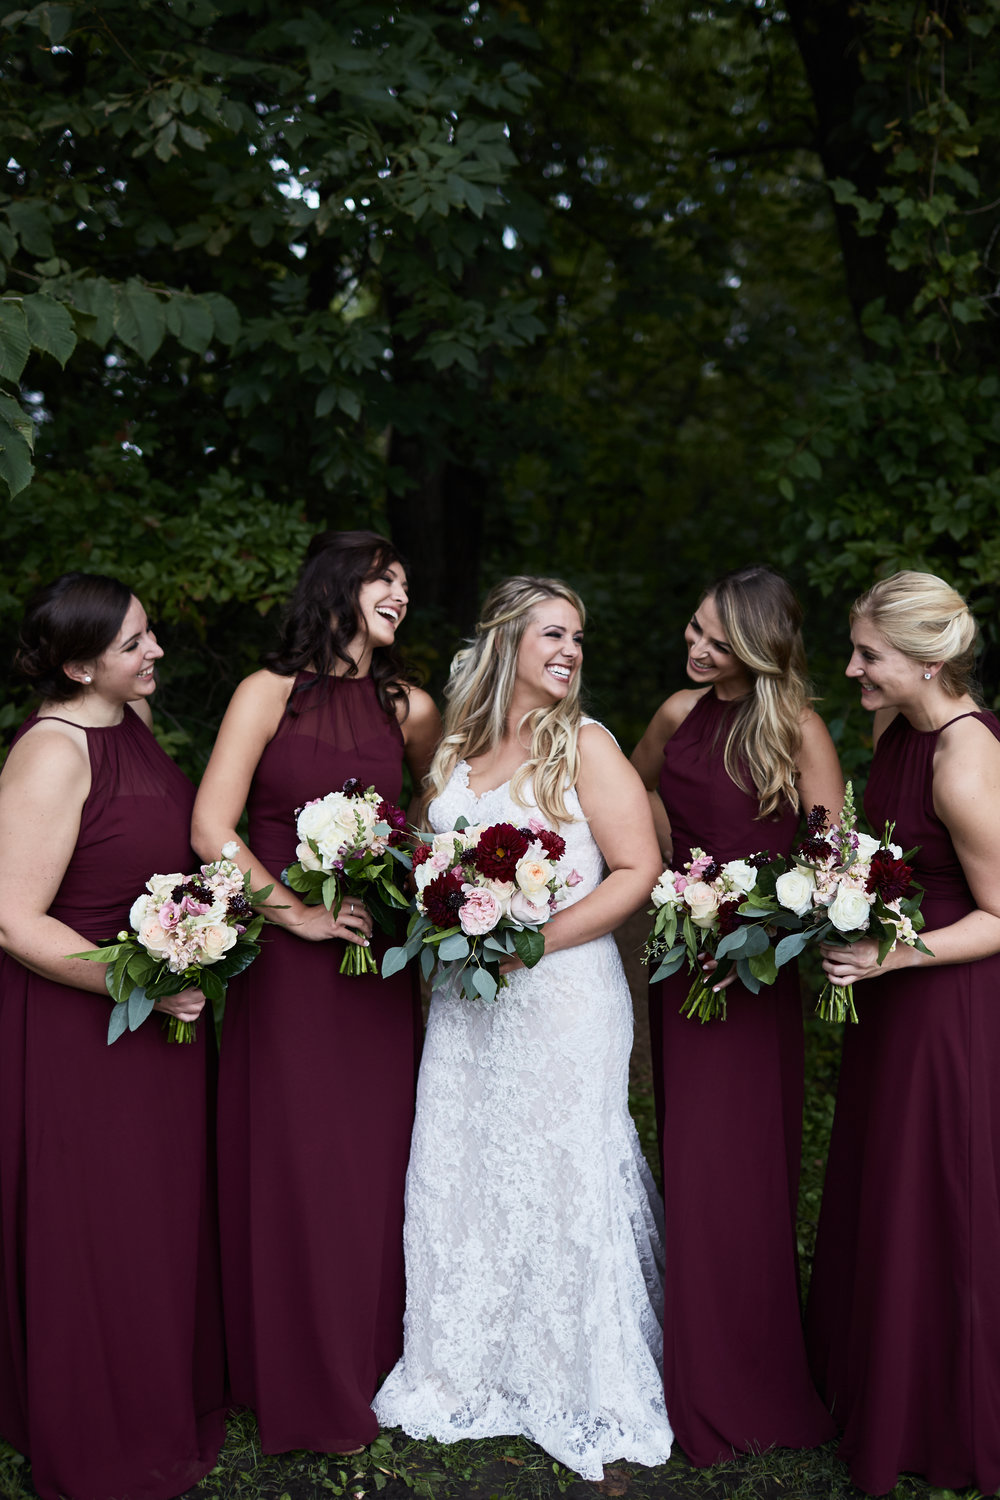 Twin_Cities_Minneapolis_Minnesota_Wedding_Photographer_Candid_Barn_Rustic_Outdoor_Joe_Lemke_033.JPG